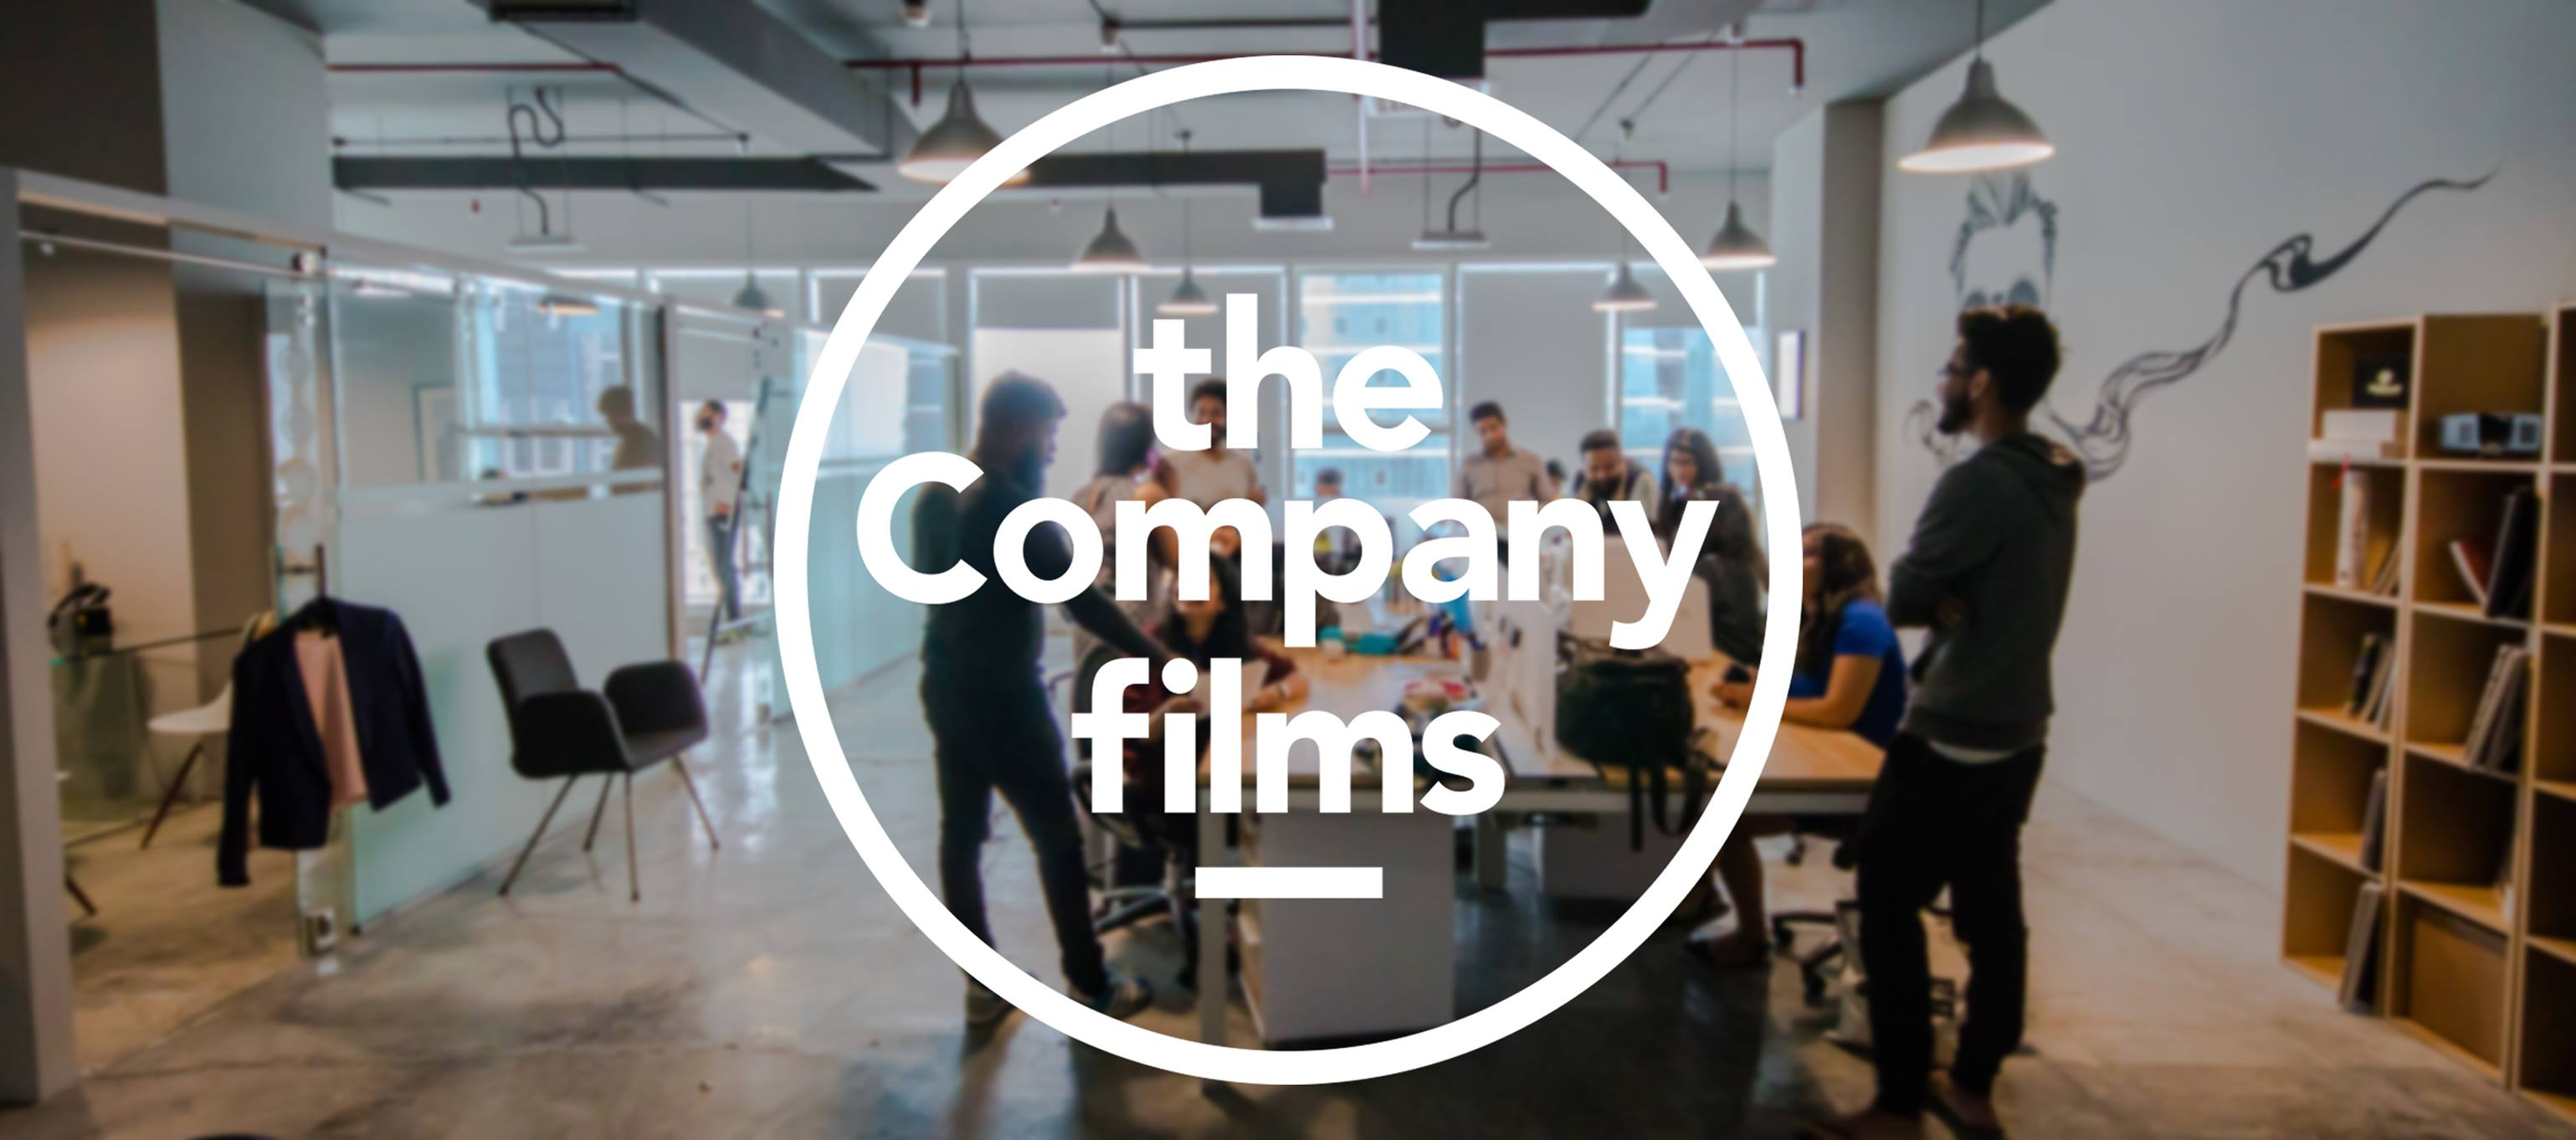 Corporate Videos - Tell the World Your Brand Story